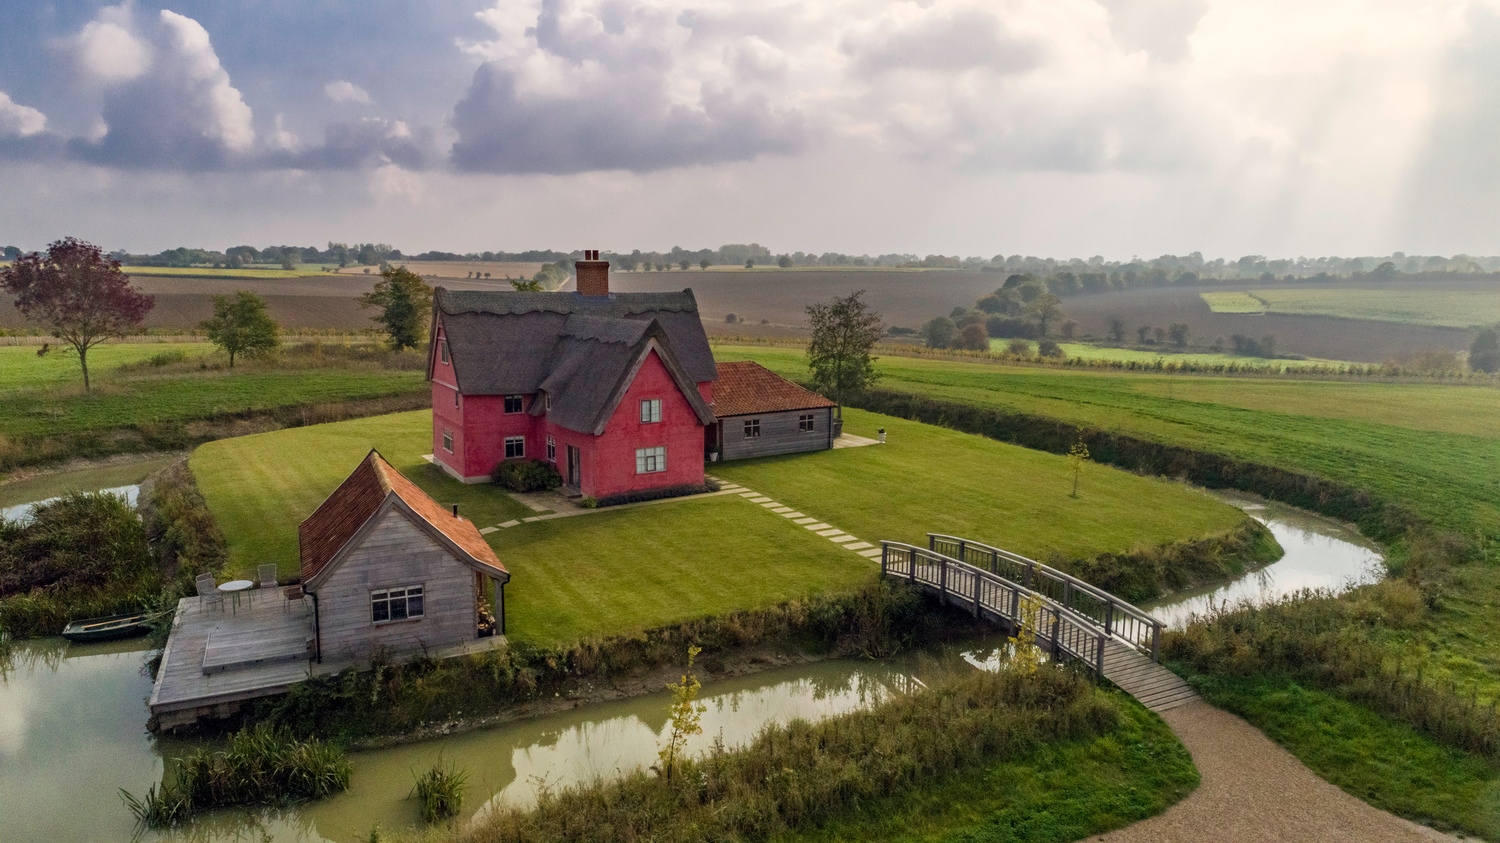 Moat Cottage - Drone by Alexander Parnell